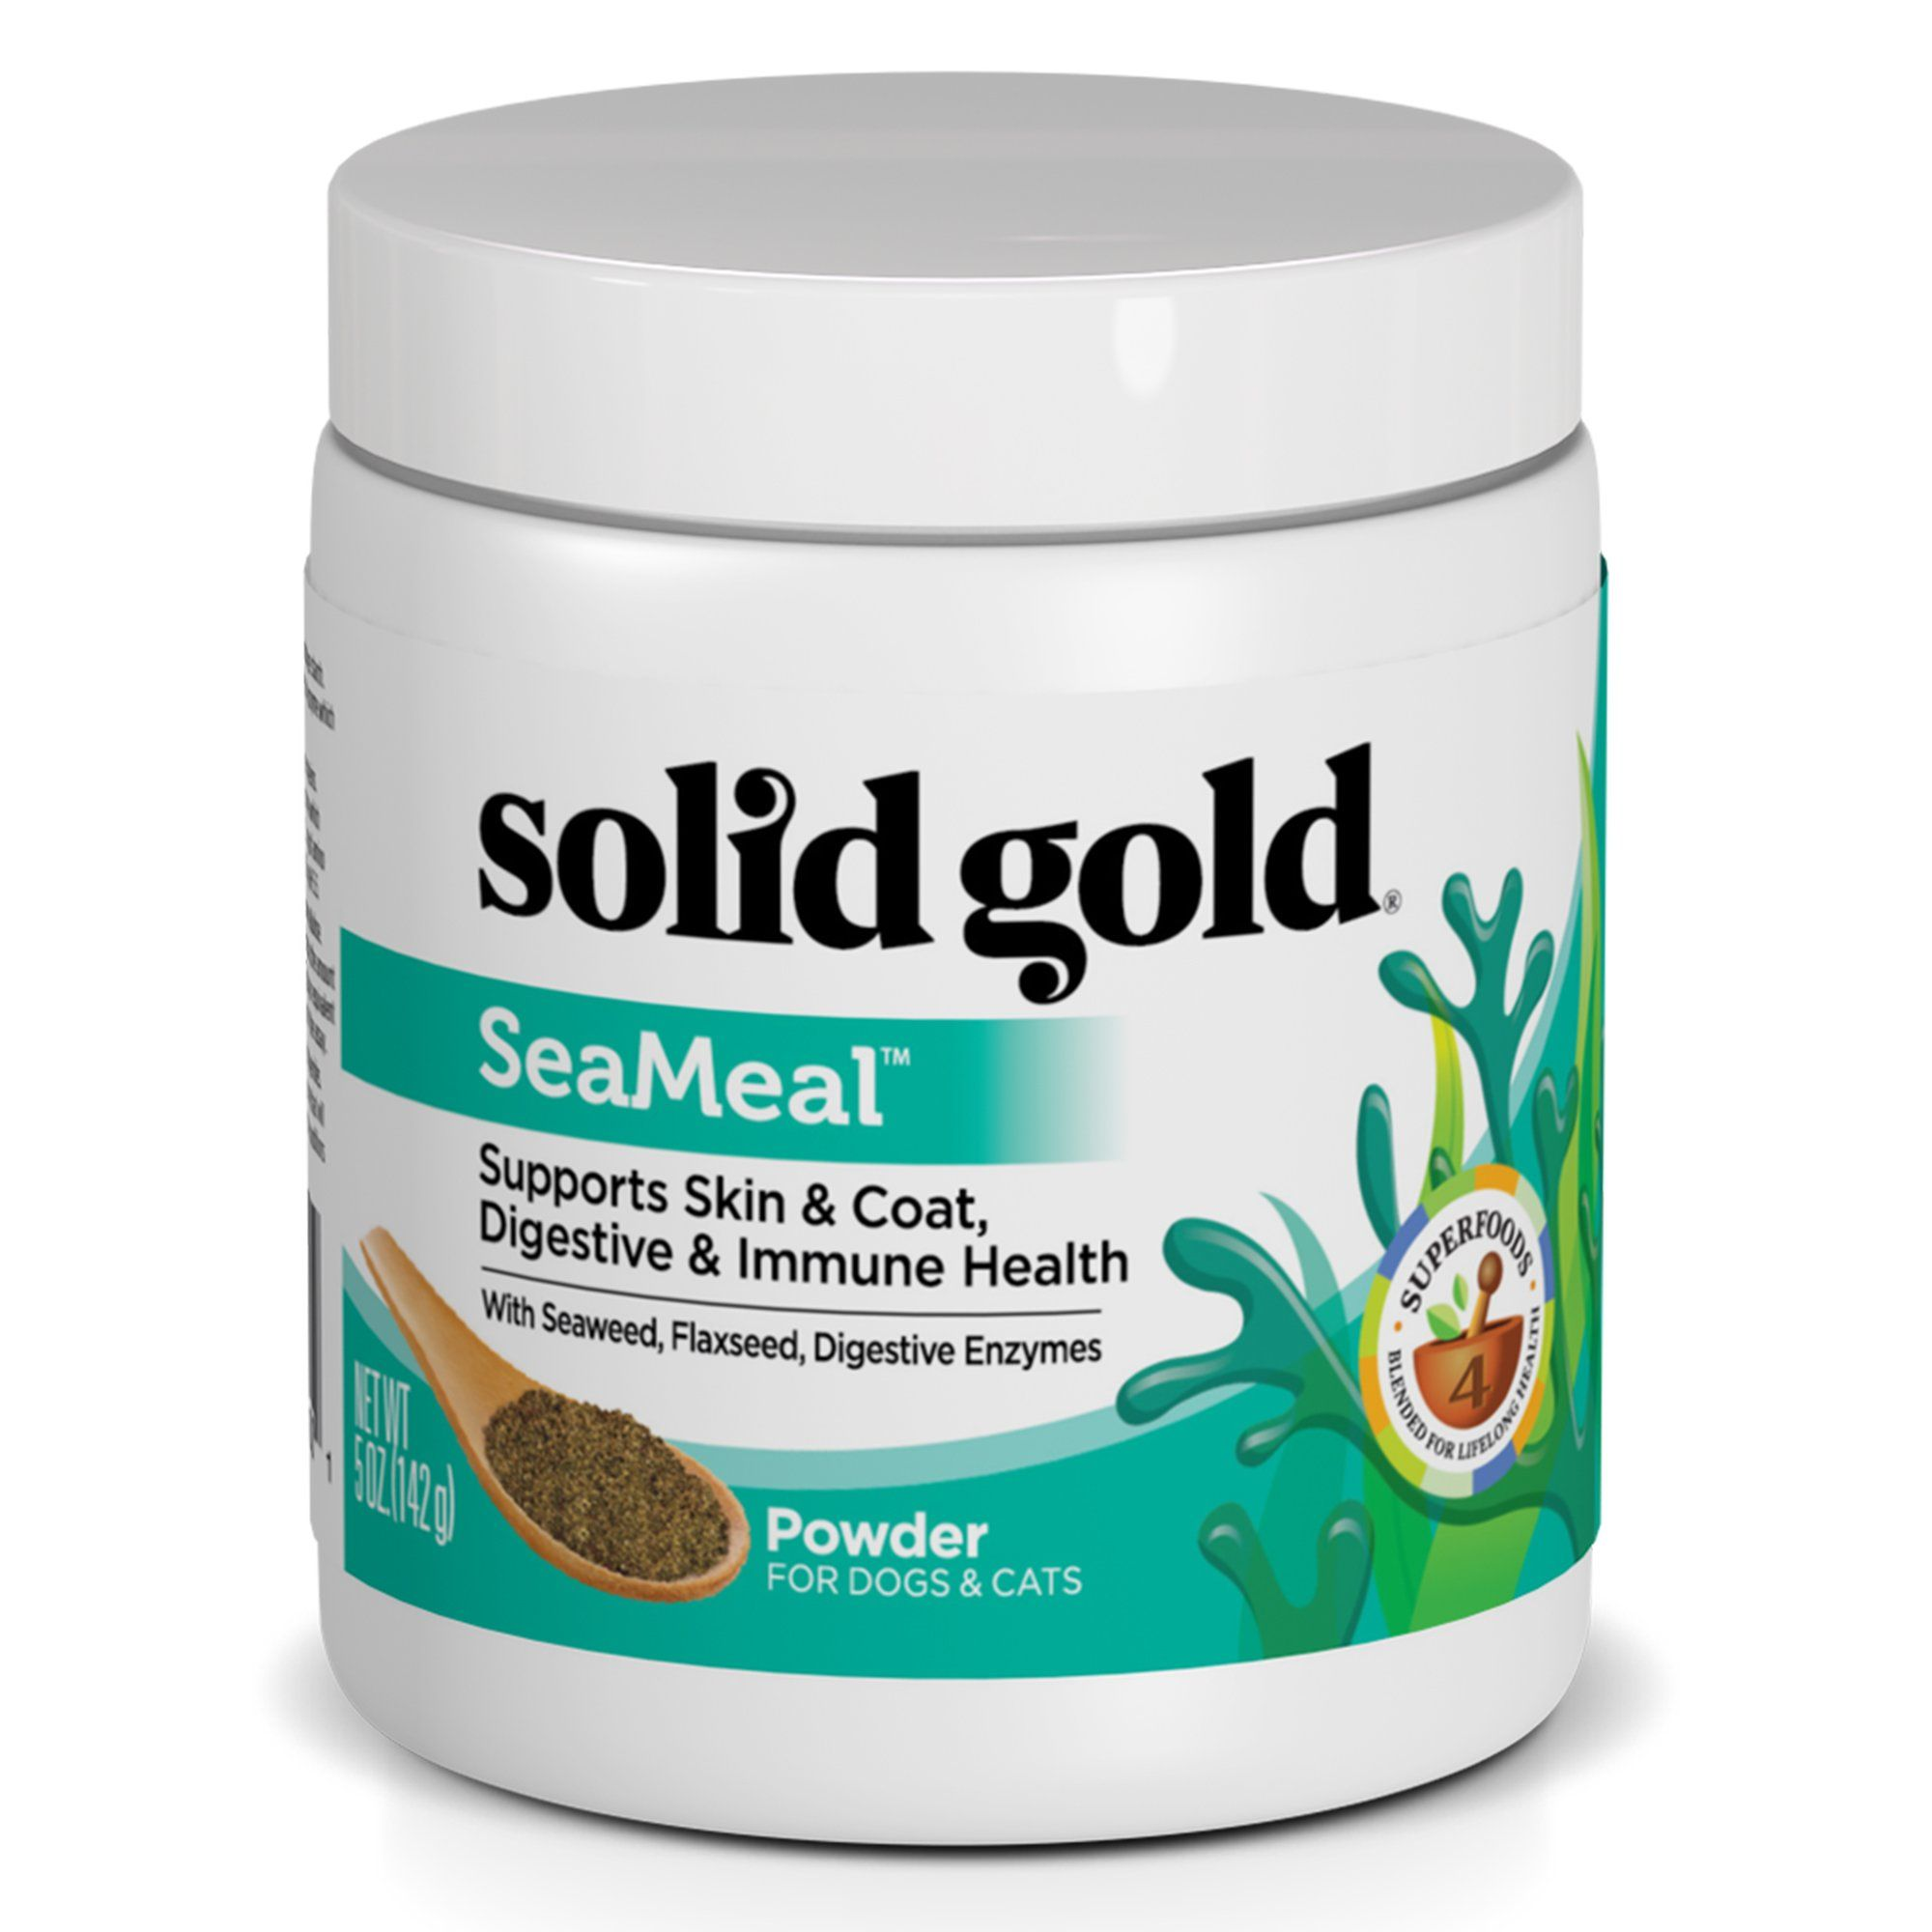 Solid Gold SeaMeal Powder for Skin & Coat, Digestive